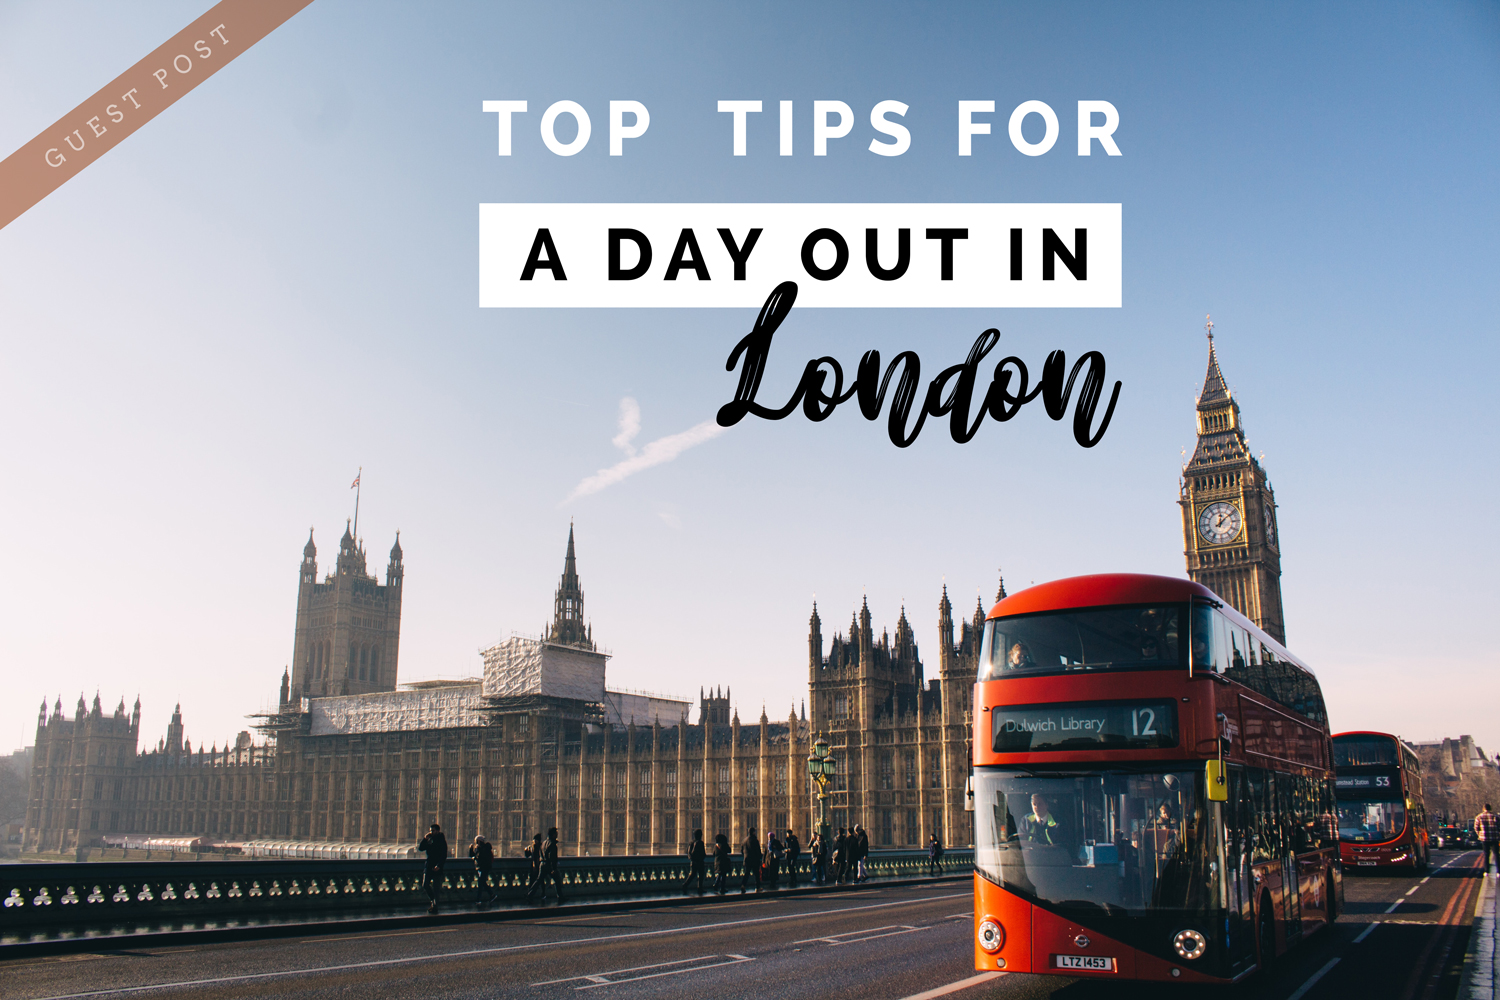 Top 3 Tips for a Day Out in London